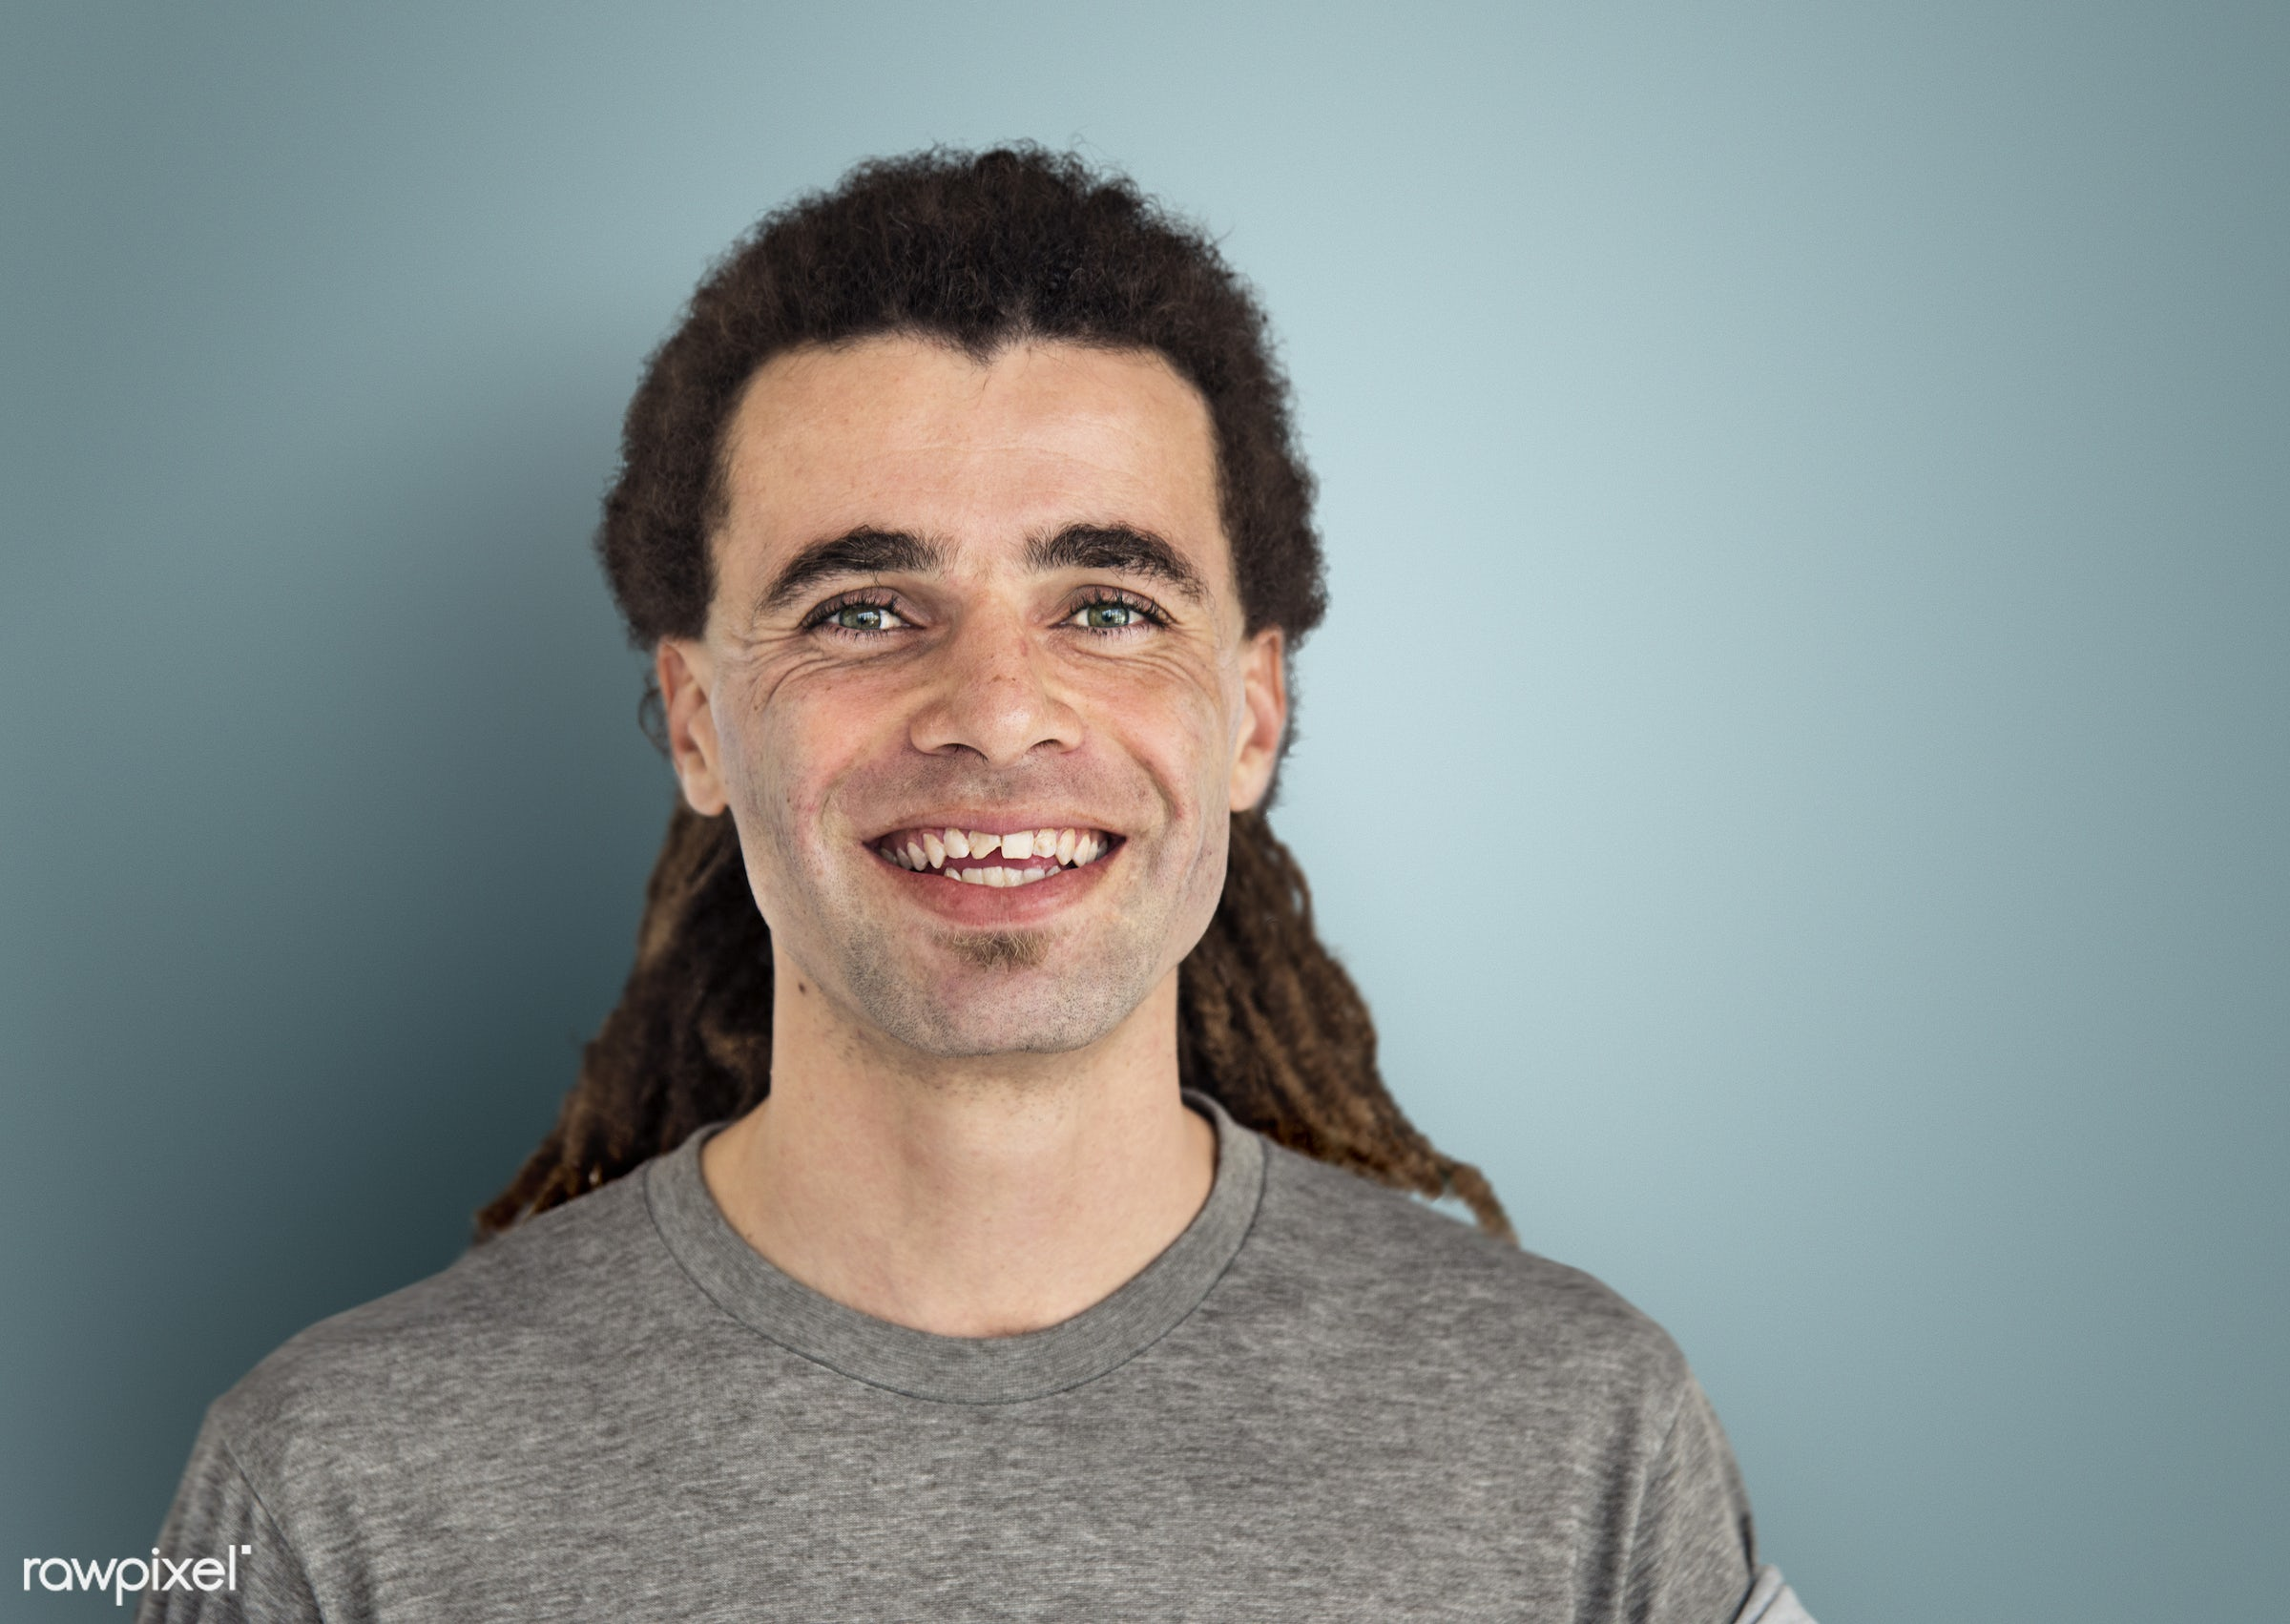 expression, person, caucasian, lifestyle, positive, cheerful, smiling, gentleman, cool, isolated, dreadlocks, alternative,...